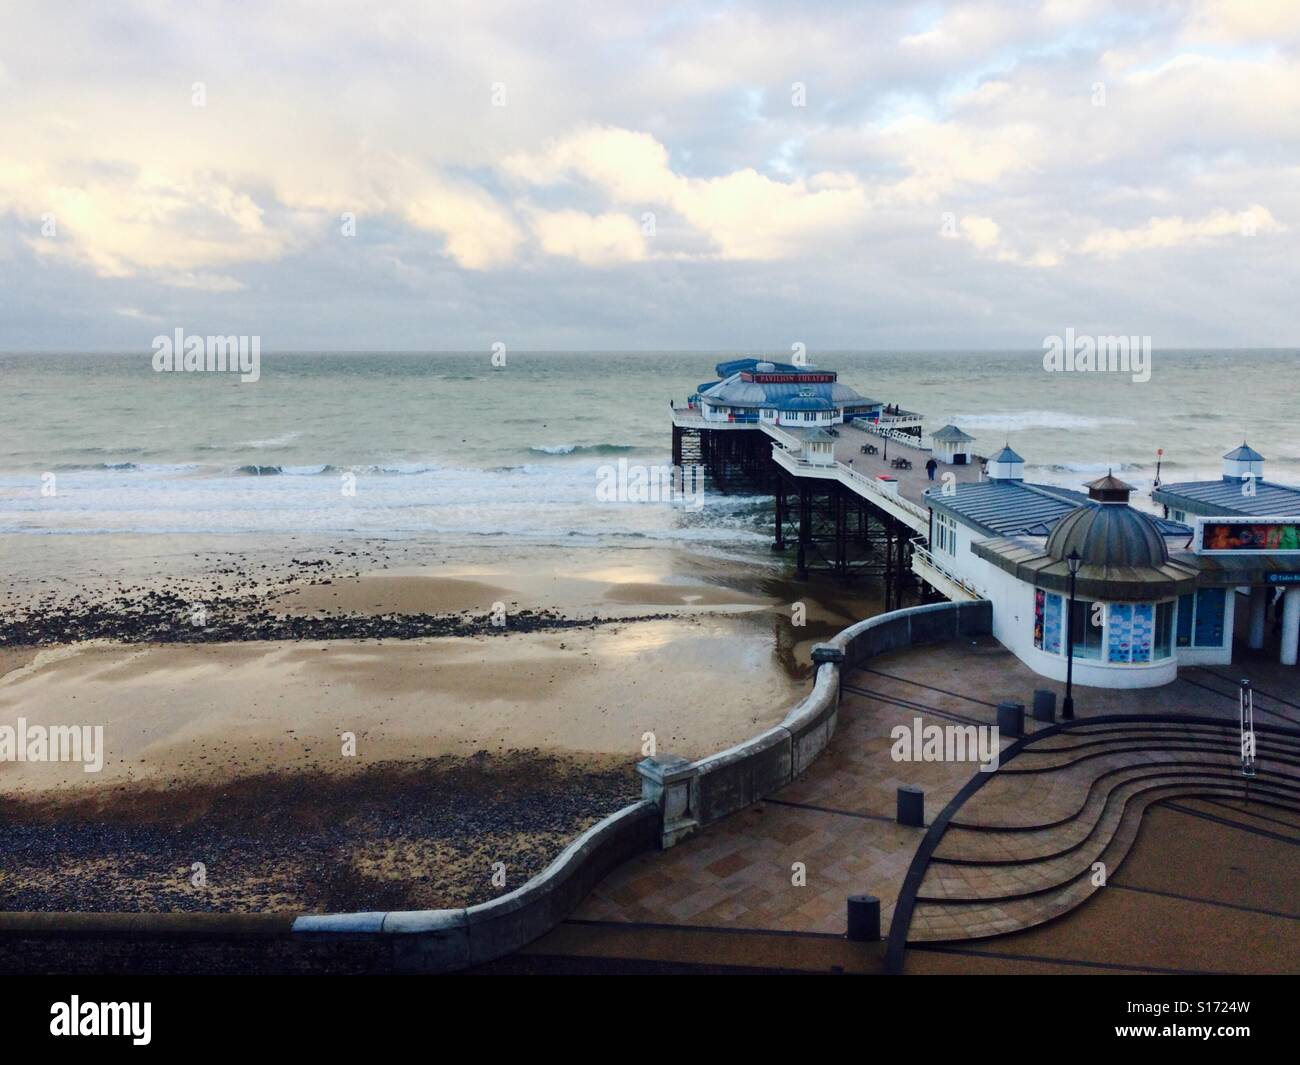 Cromer beach, cold windy October day - Stock Image